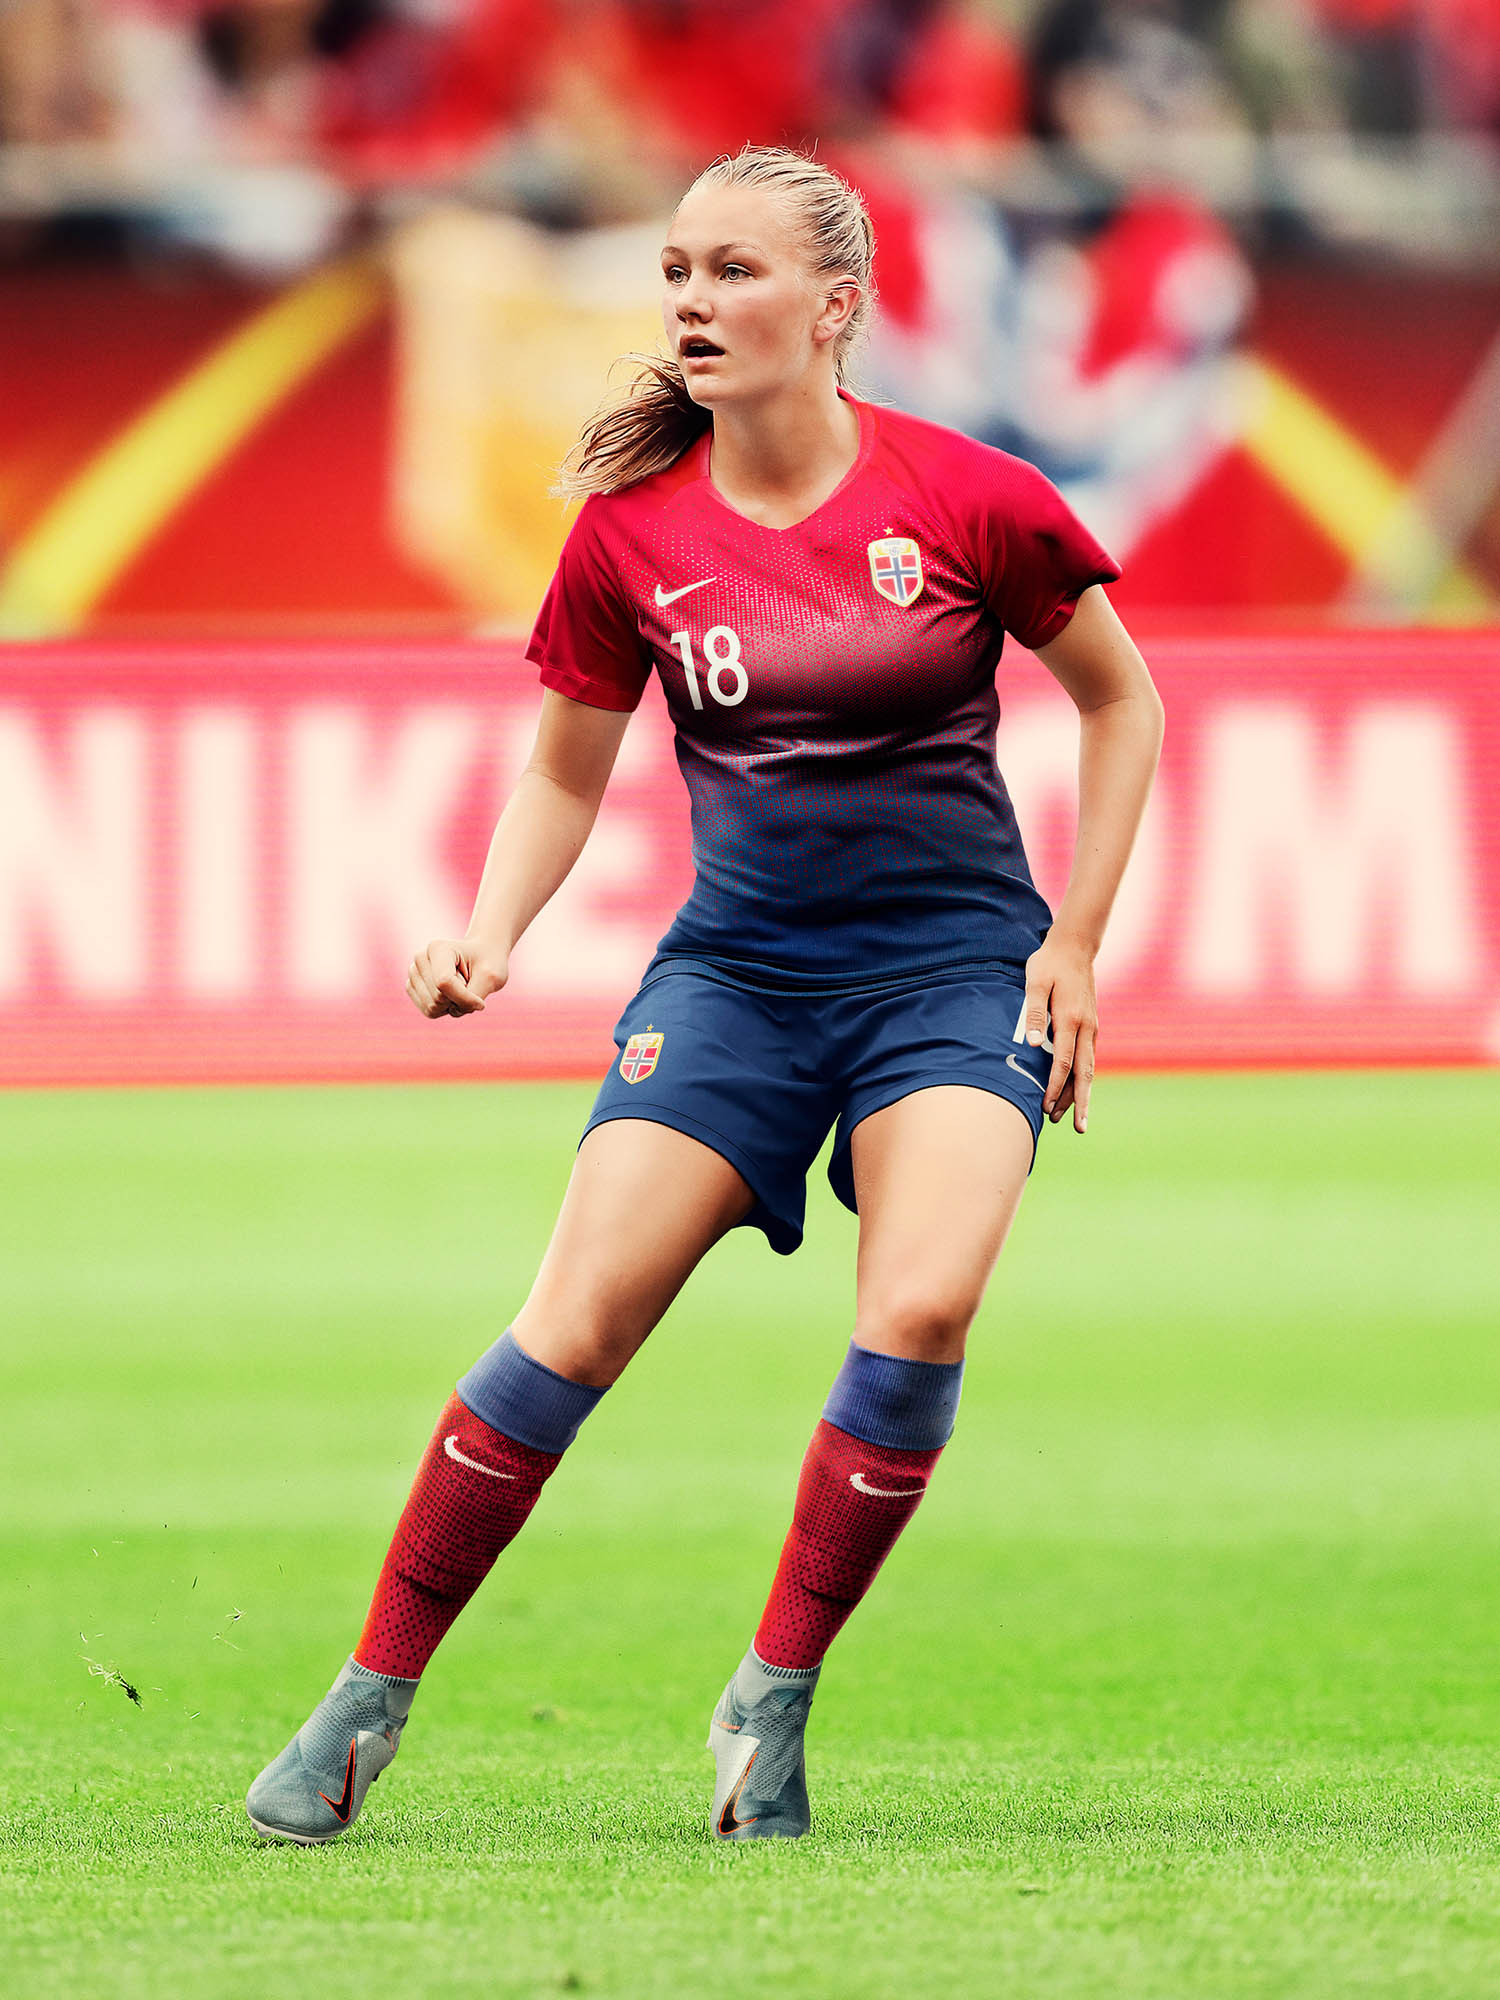 wwc portrait nike kits_0001_norway-national-team-kit-2019-performance-2_original.jpg